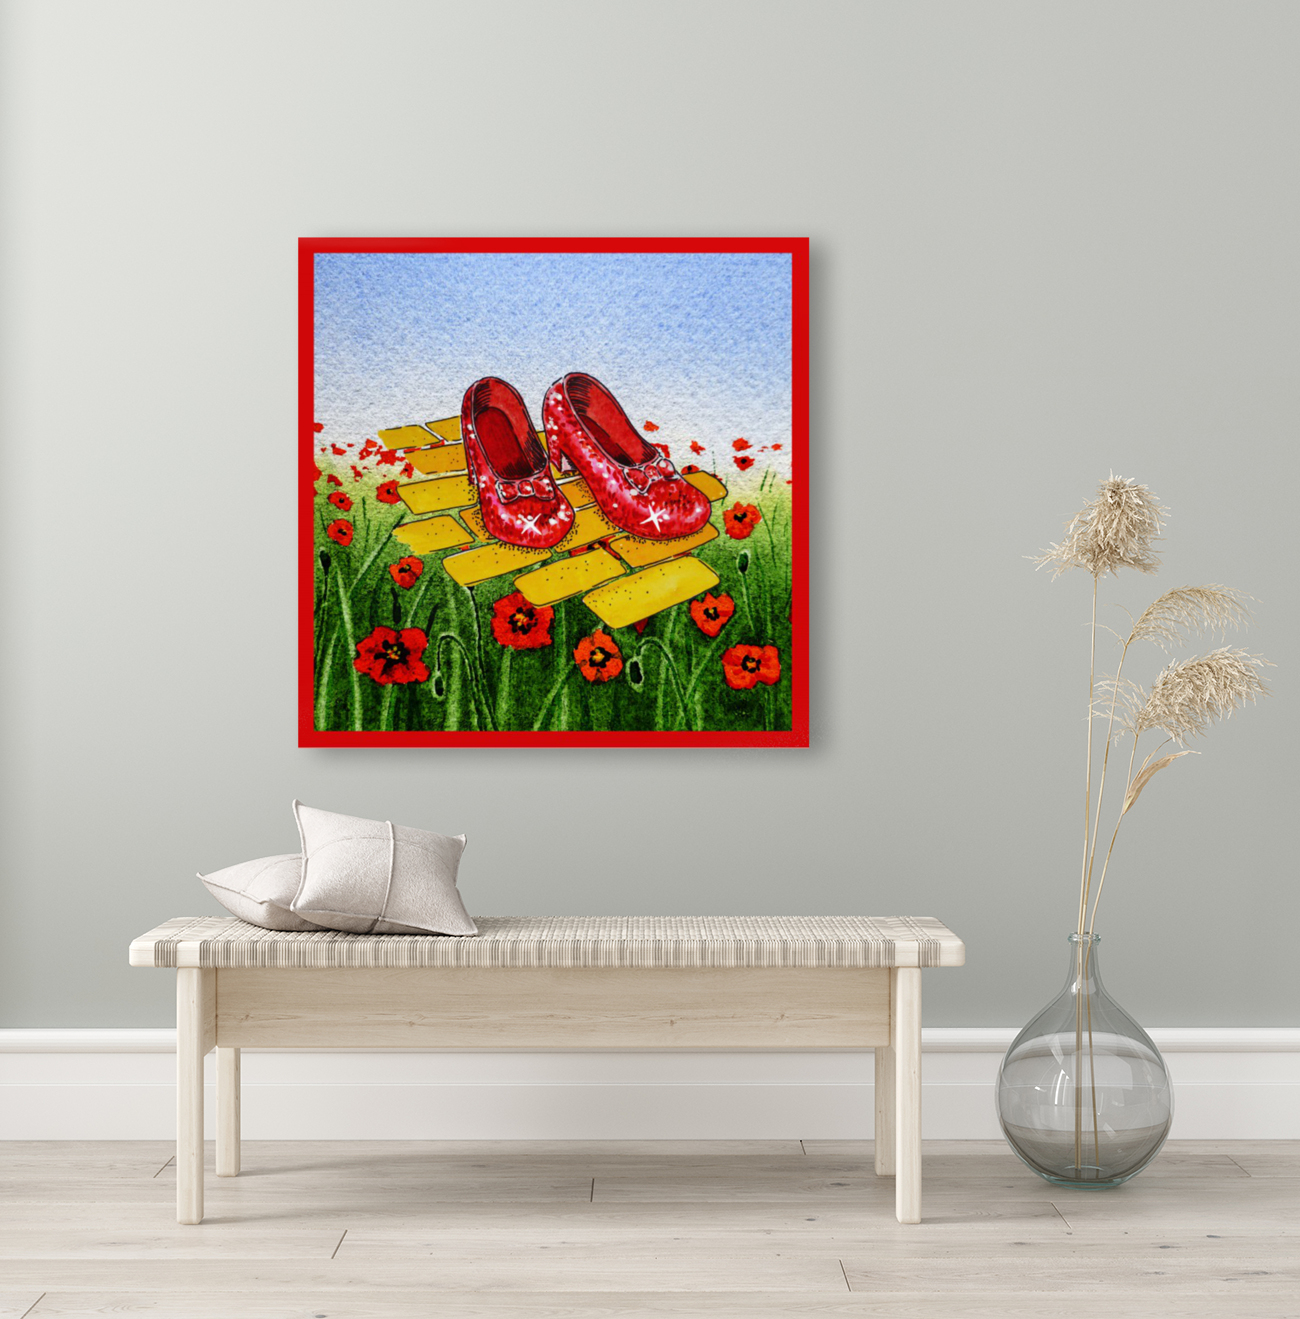 Ruby Slippers Yellow Brick Road Red Poppies Field  Art